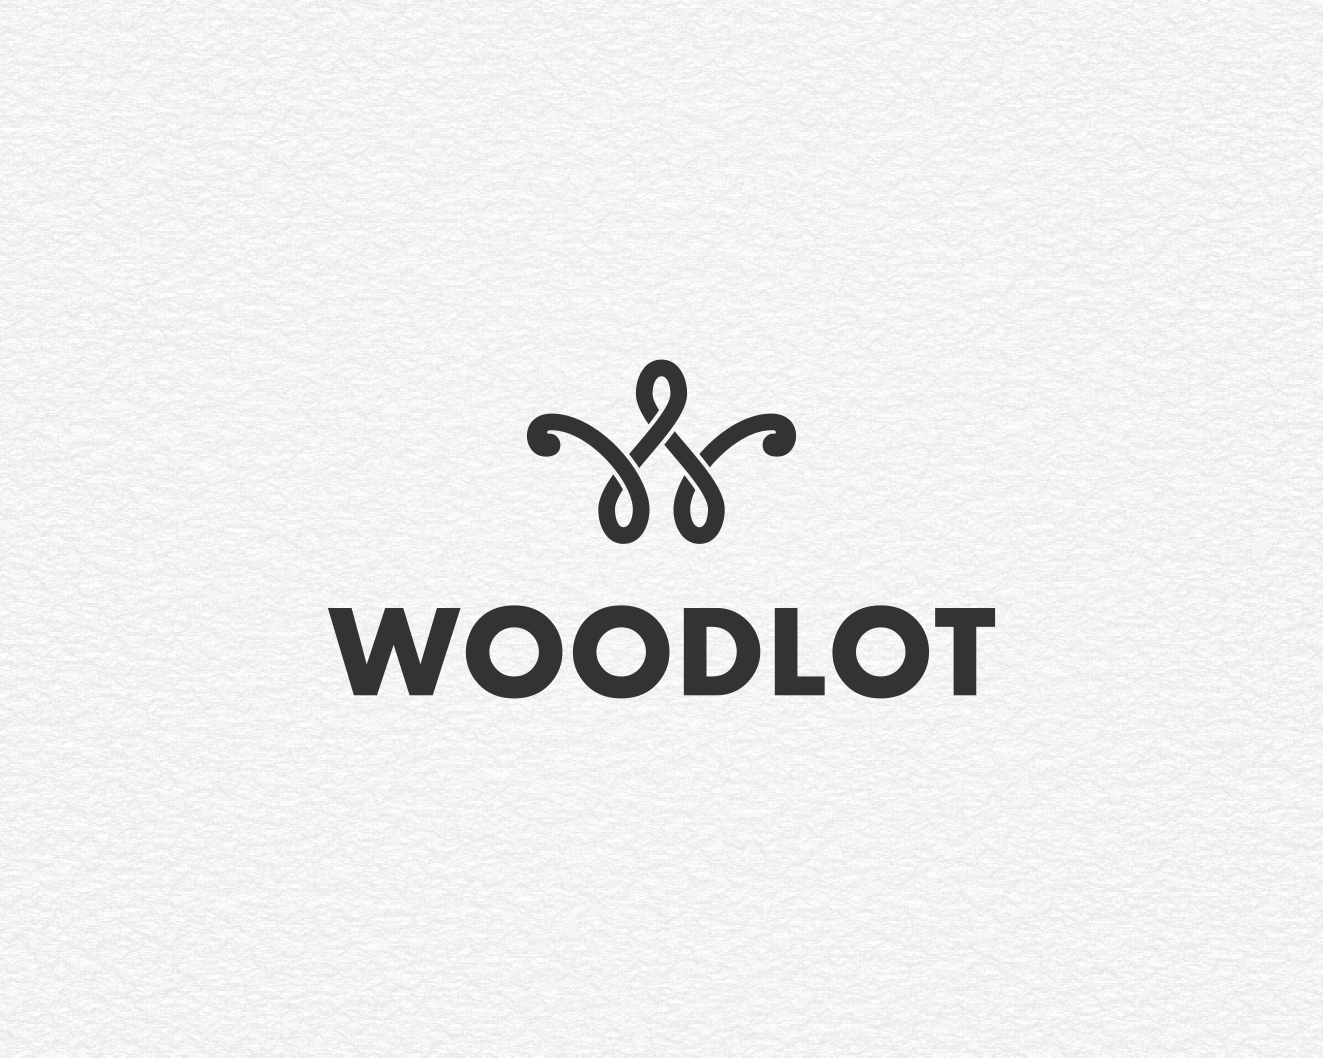 Logo Design by Rares.Andrei - Entry No. 66 in the Logo Design Contest Fun Logo Design for woodlot.